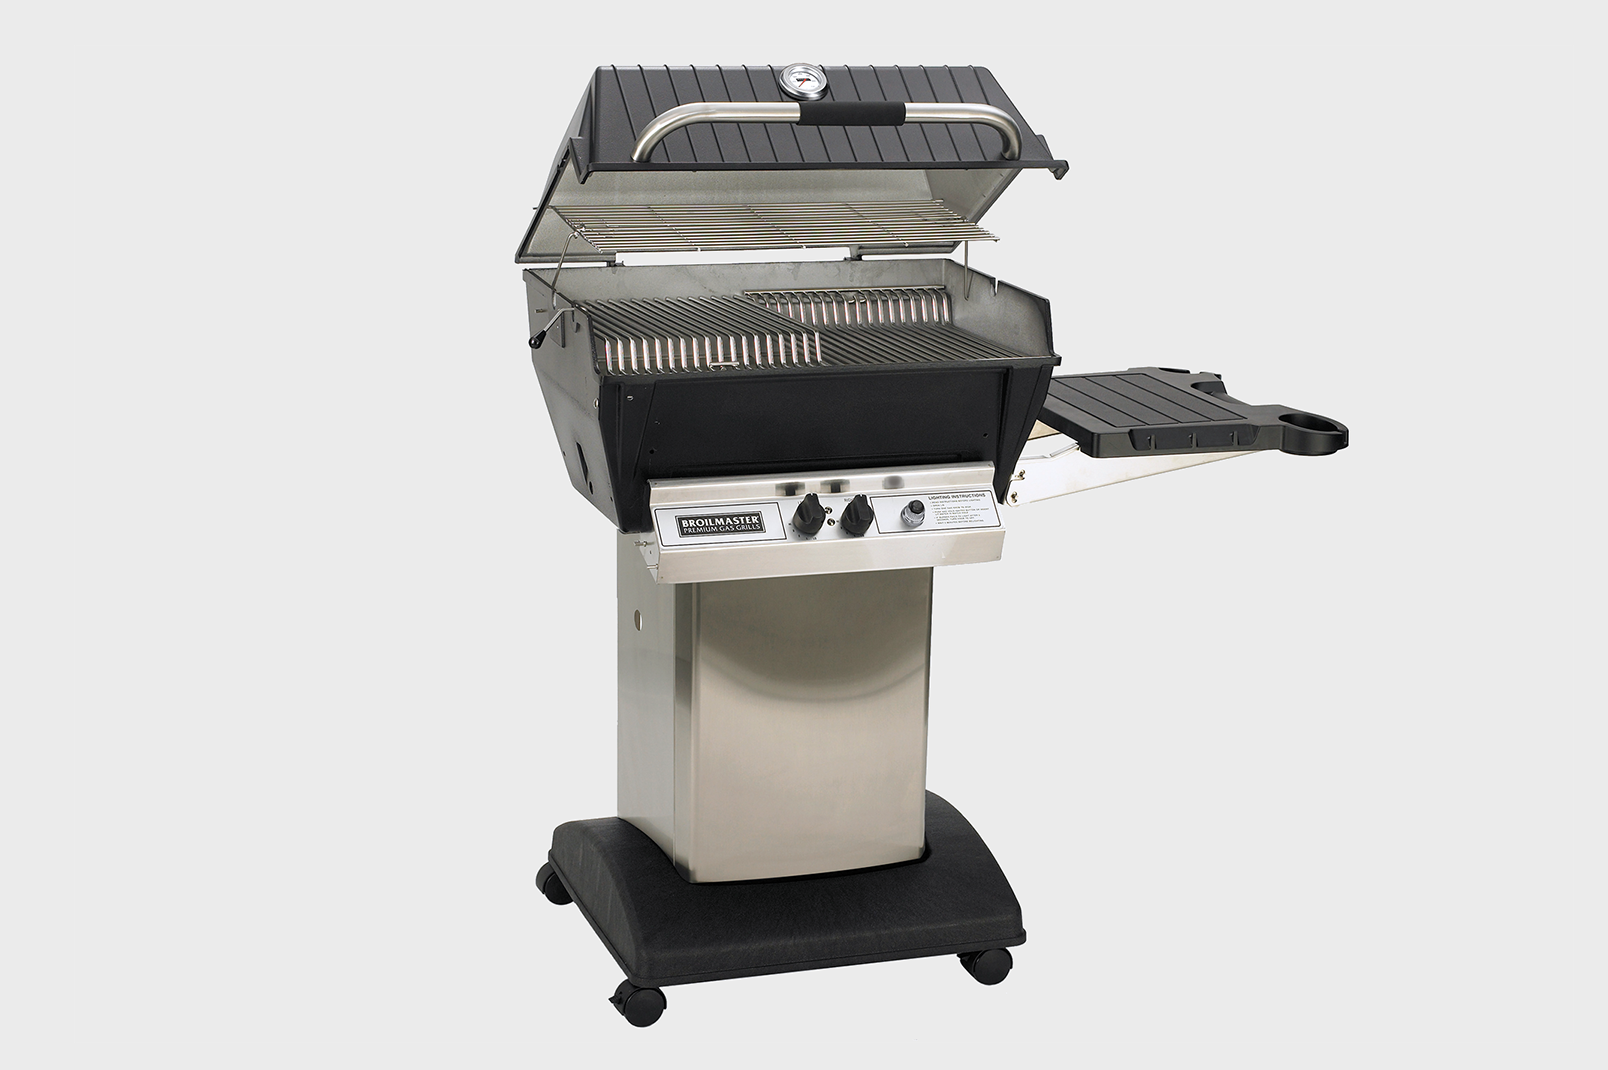 BROILMASTER GAS GRILL